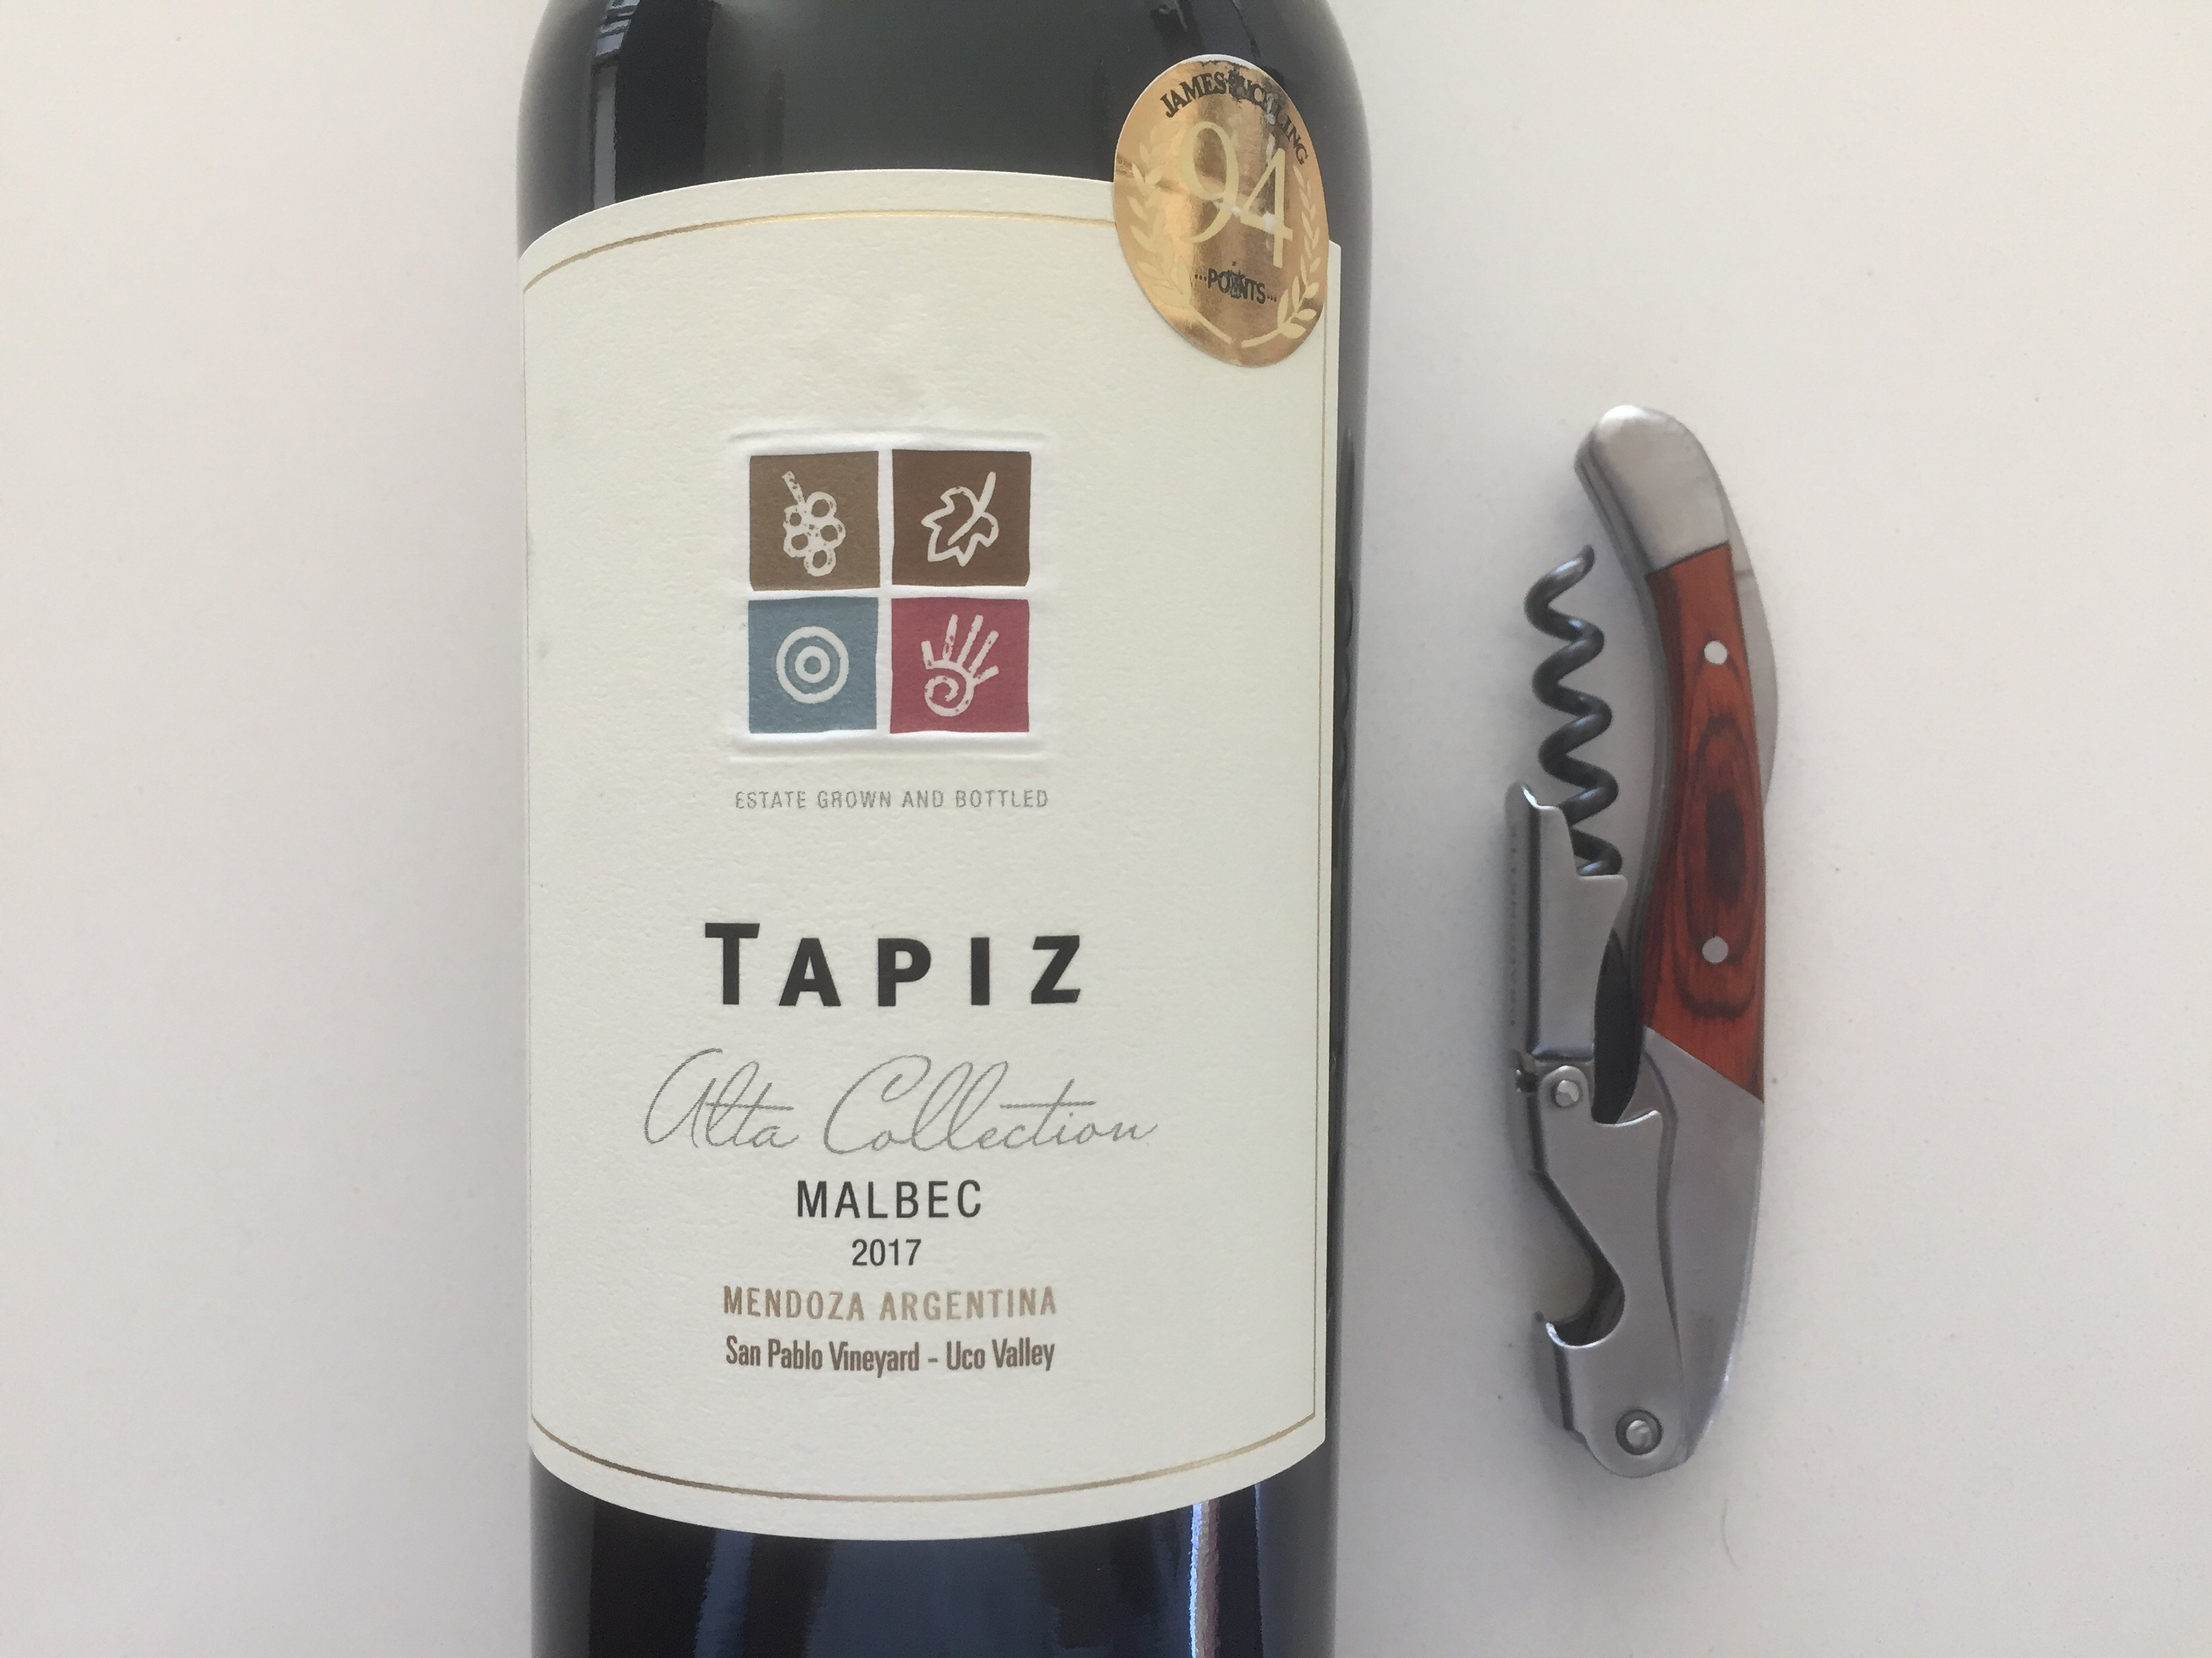 Bottle and front label of Tapiz 2017 Malbec